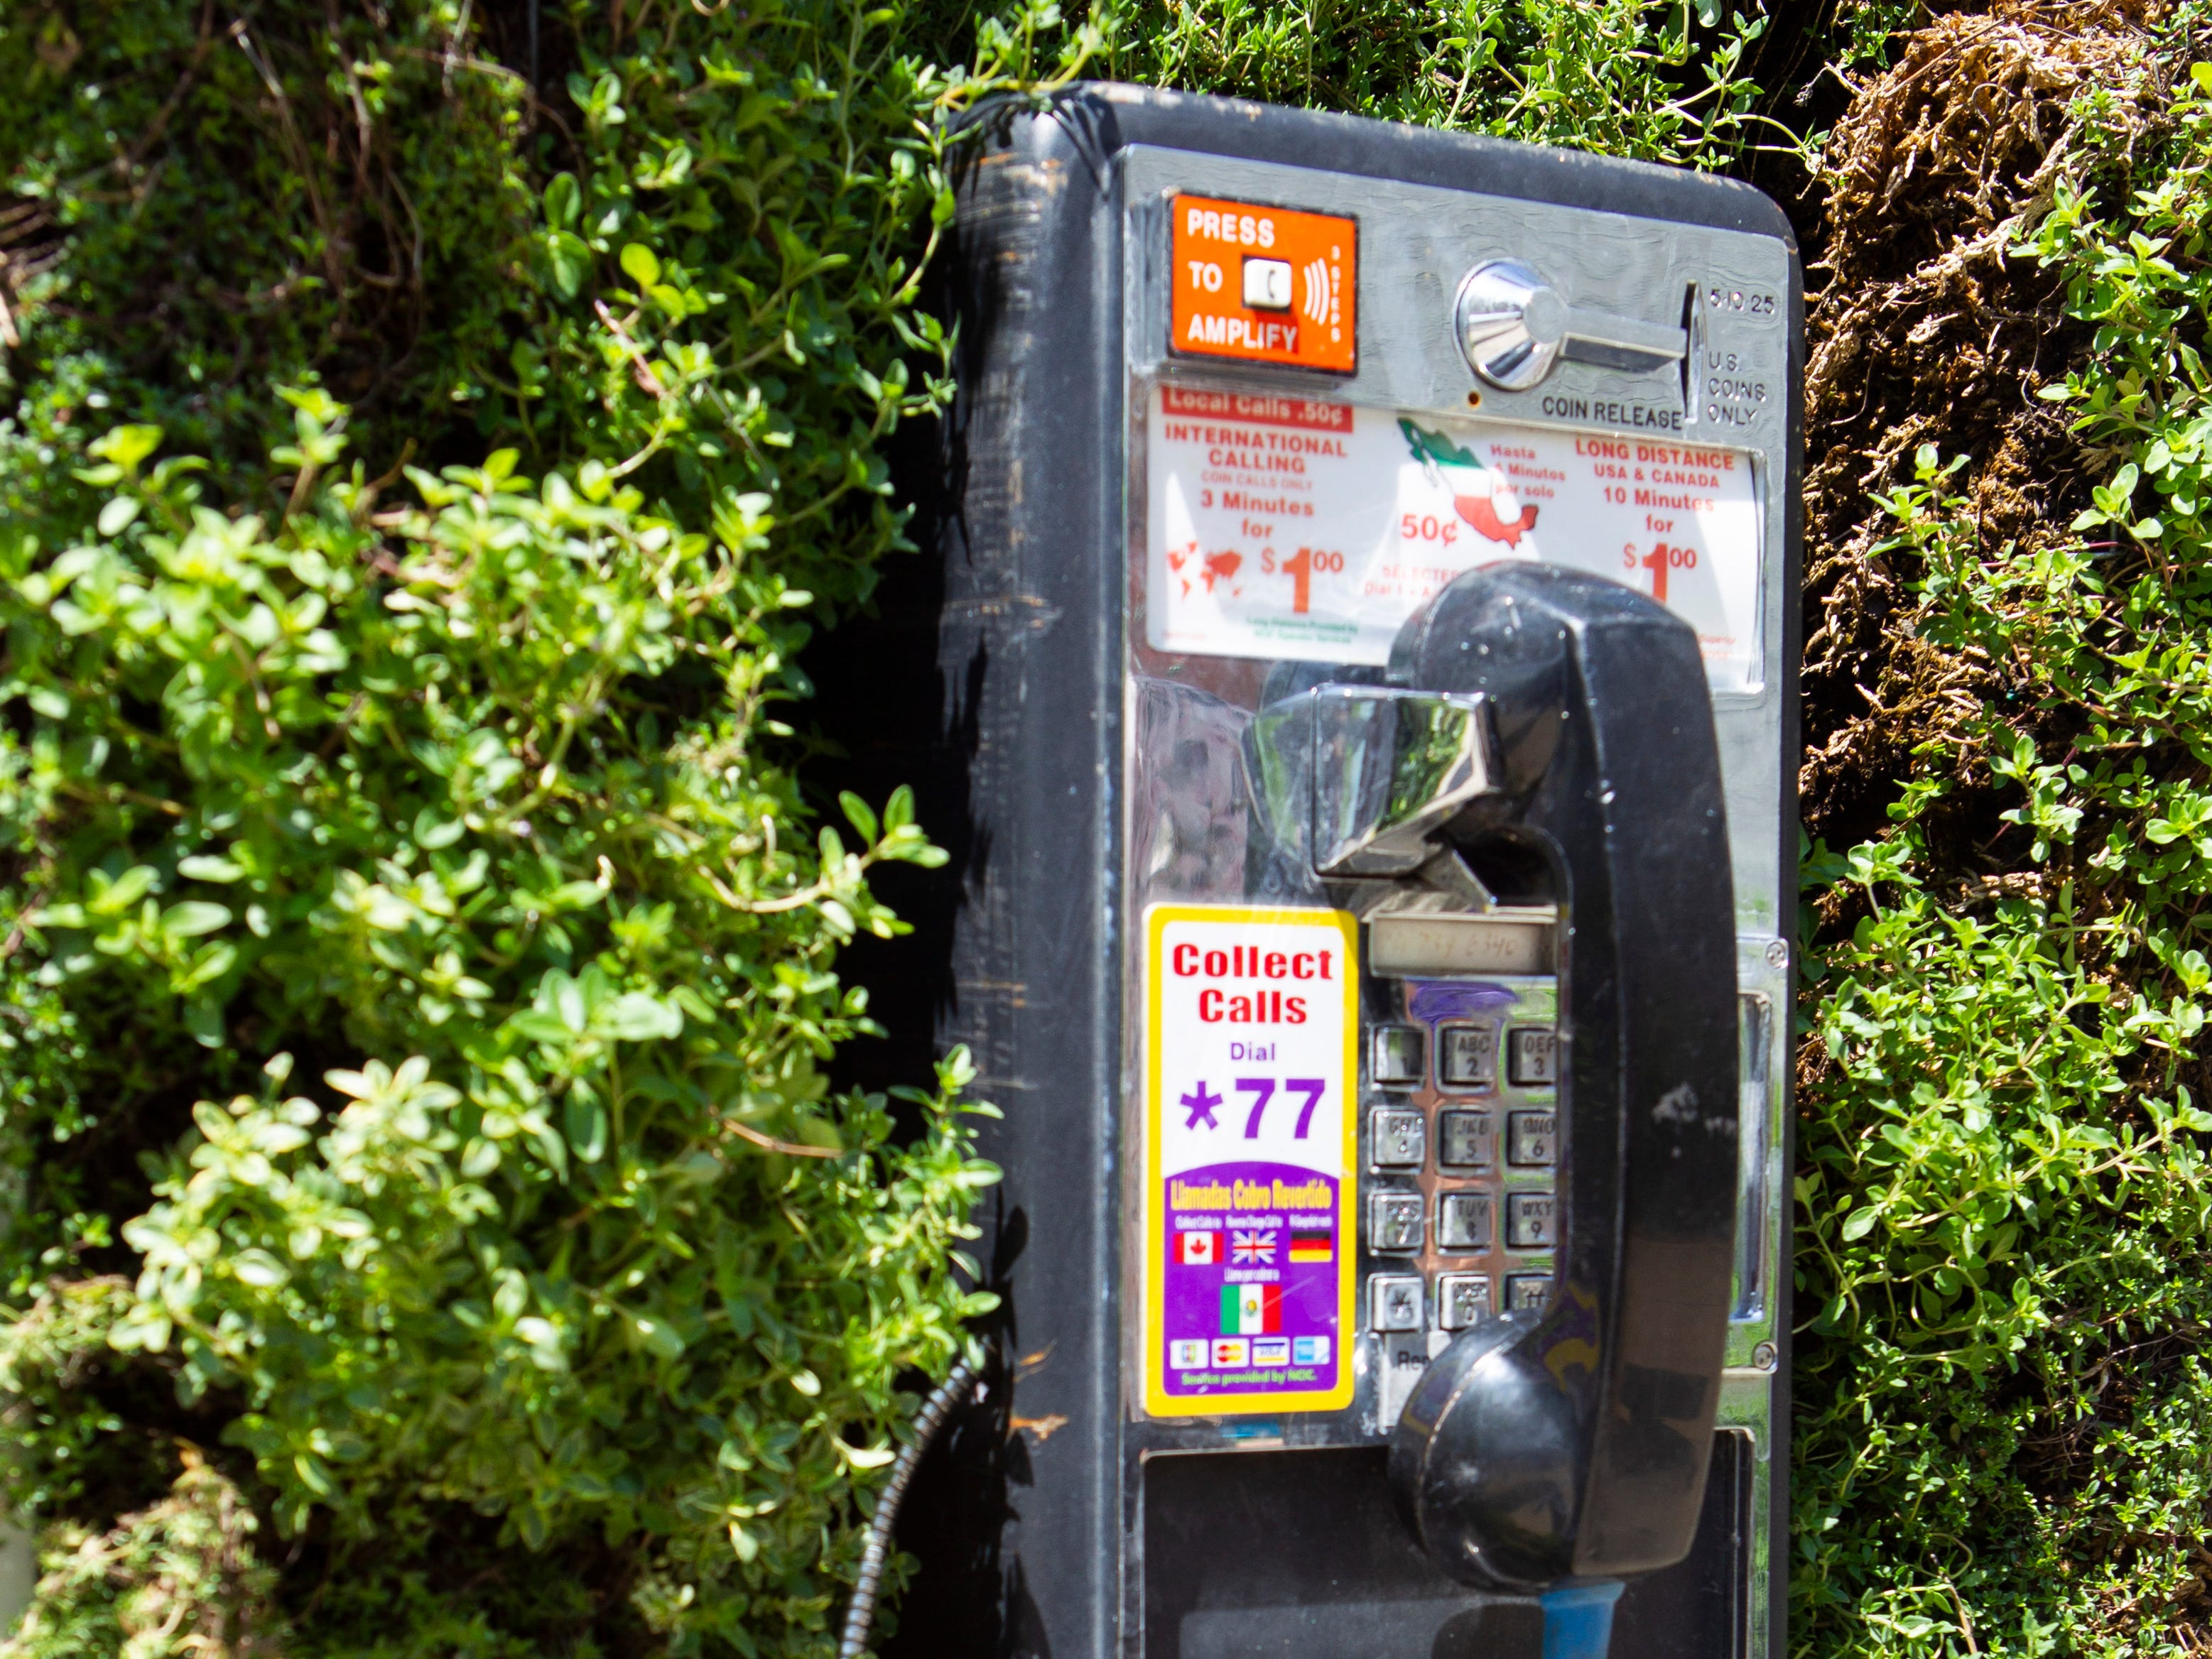 An old pay phone is filled with thyme at Wisconsin State Fair Park. But save your quarters – this phone doesn't have thyme to connect your call.